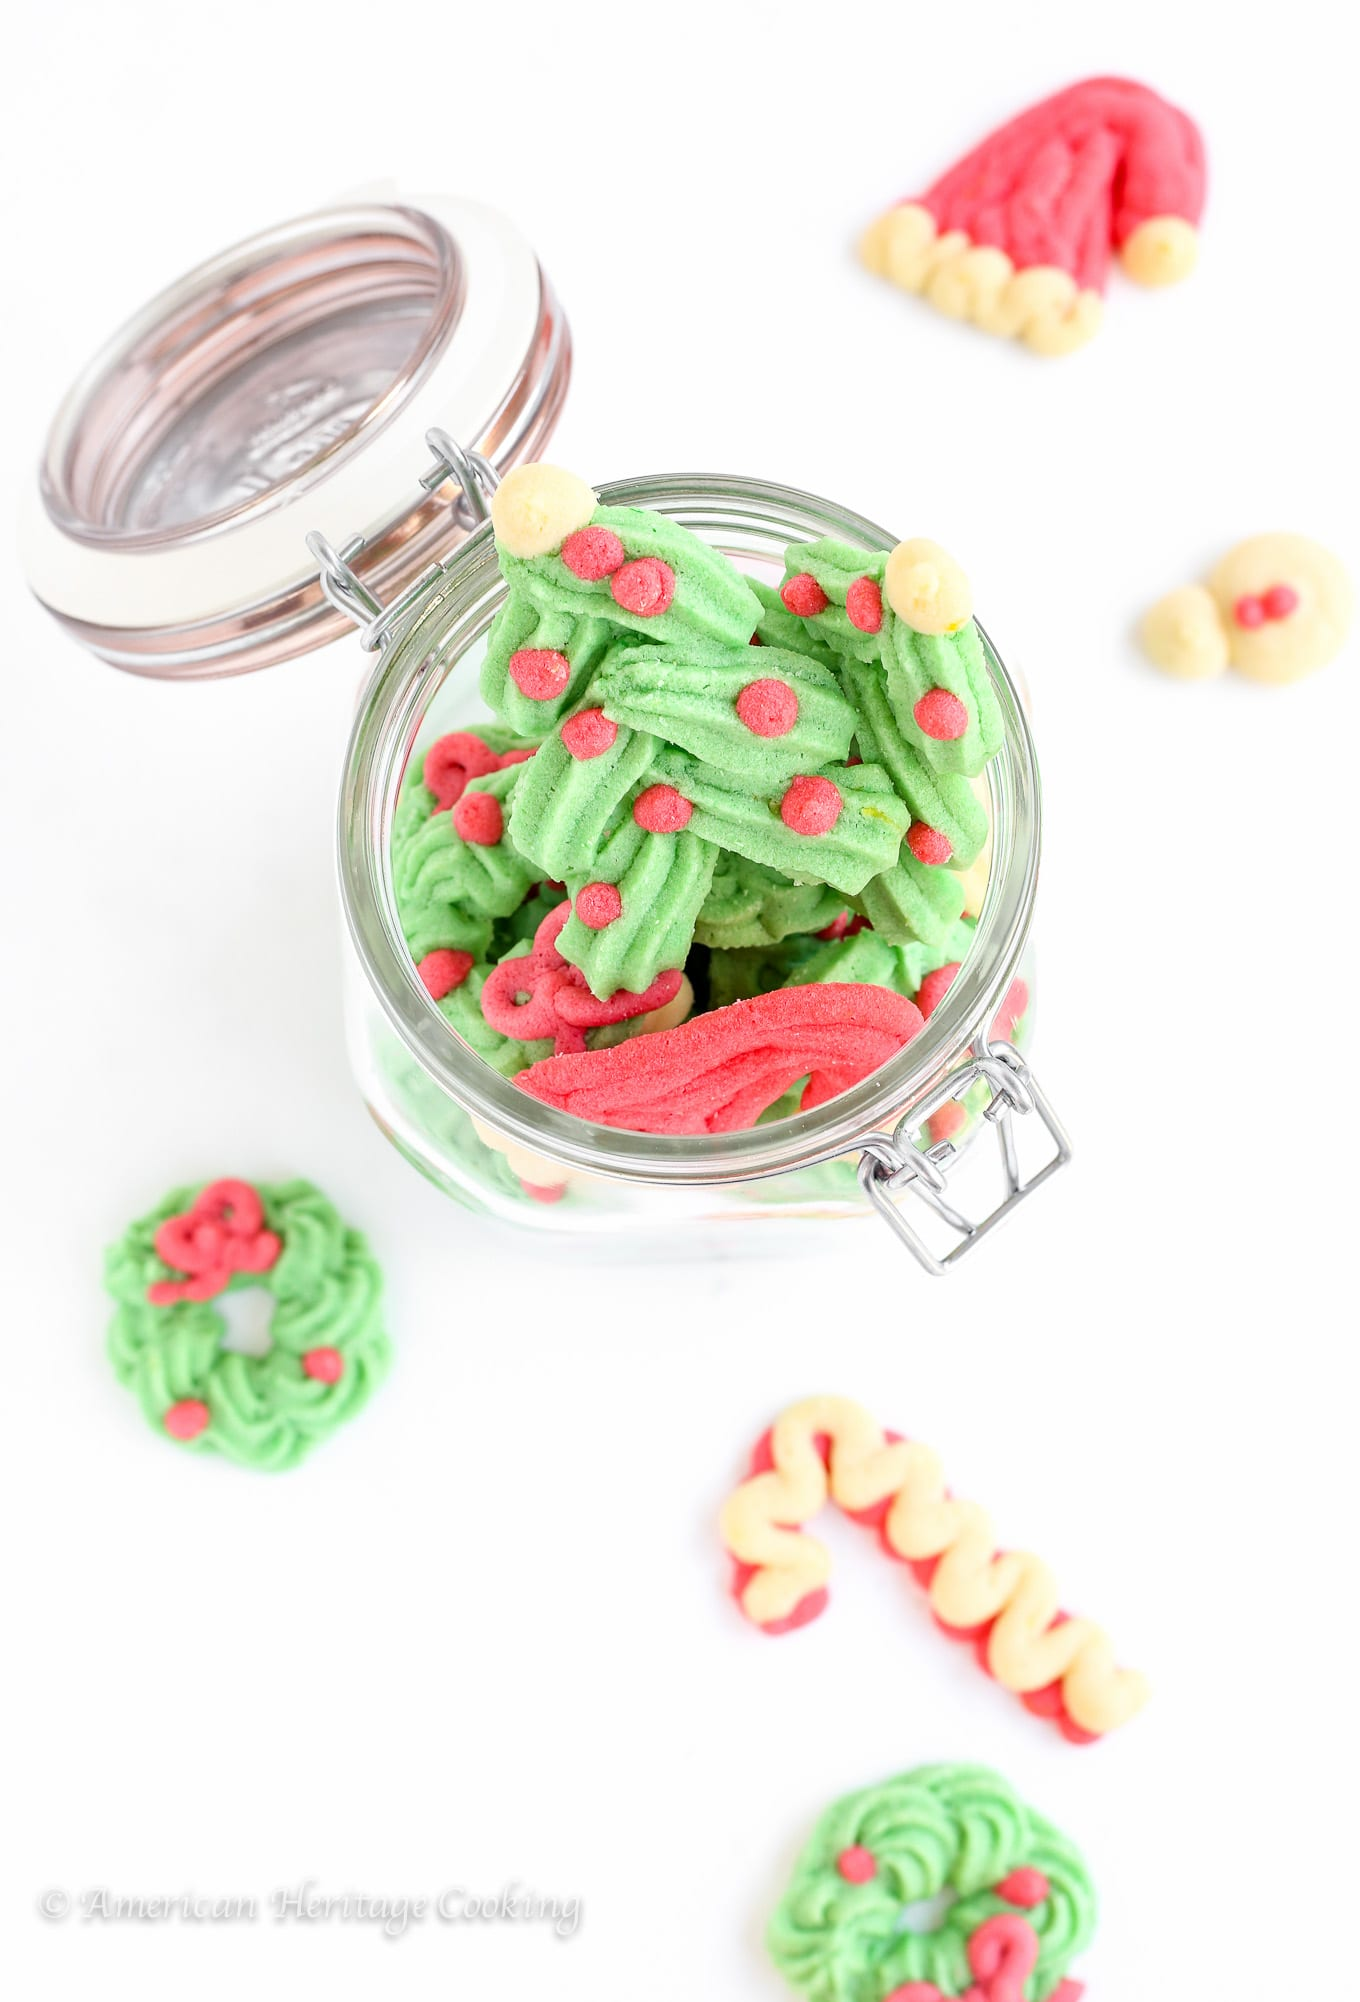 These festive Holiday Spritz Cookies are a light, delicate butter cookie flavored with vanilla and lemon.